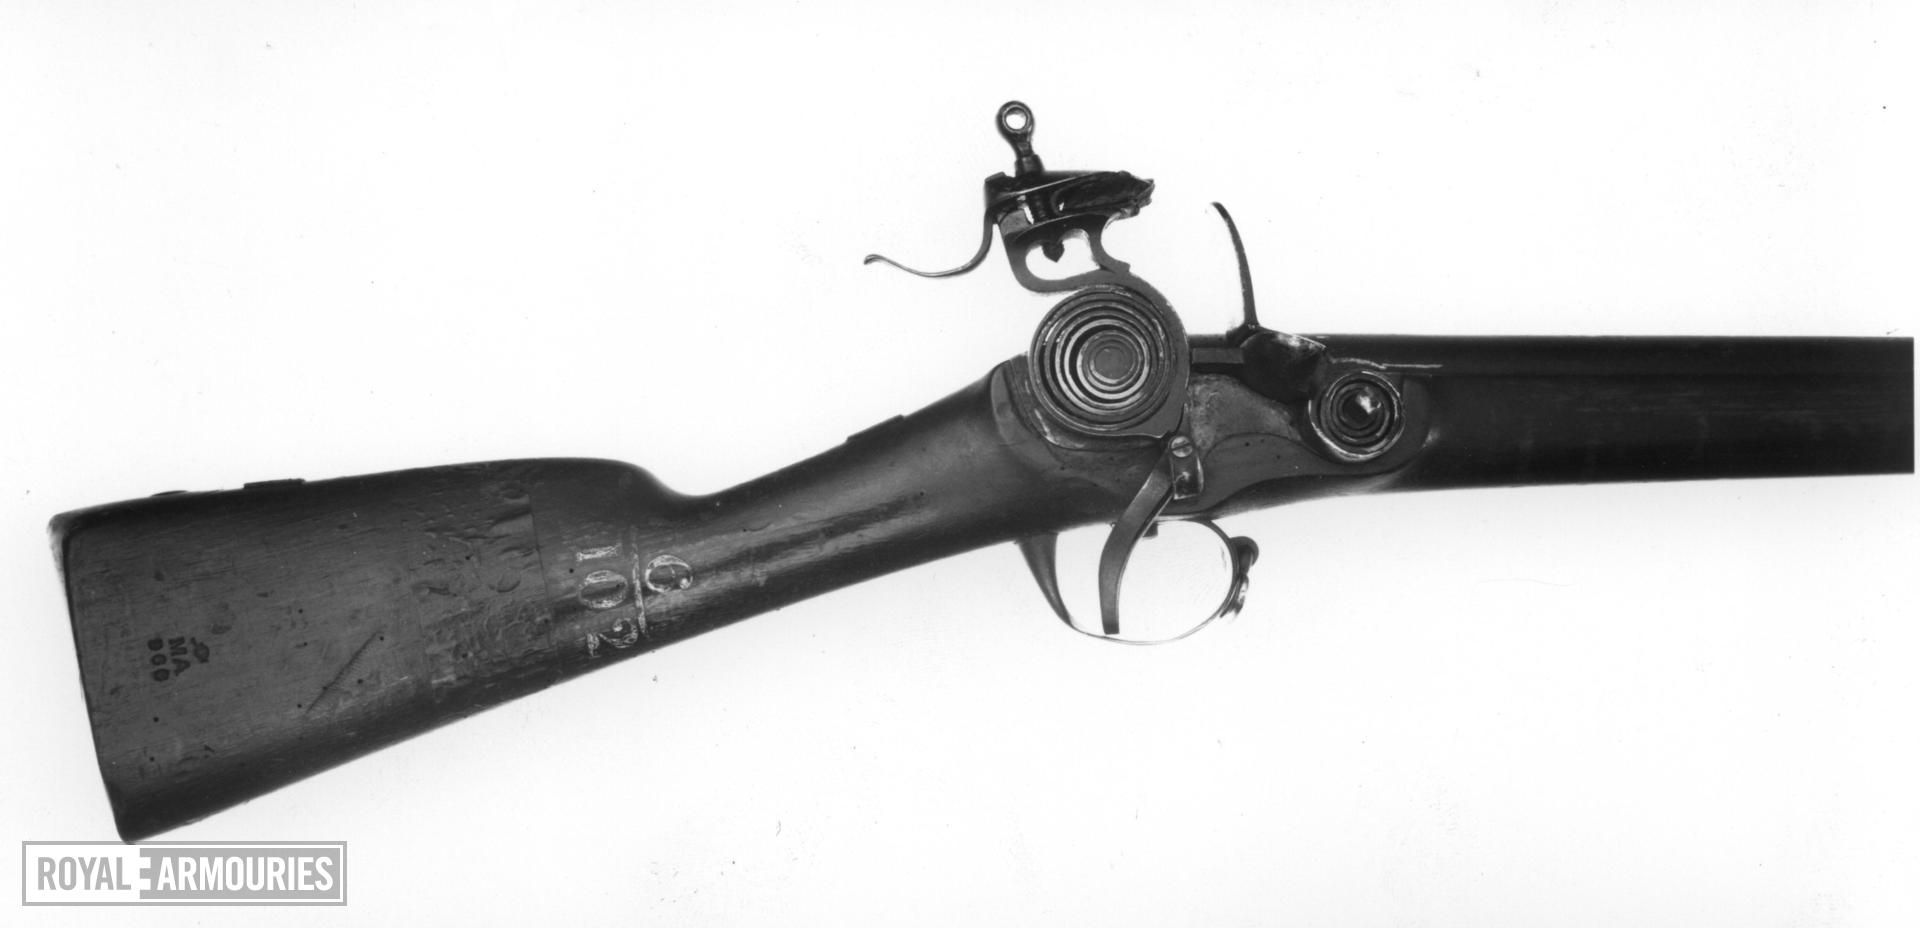 Flintlock muzzle-loading military musket